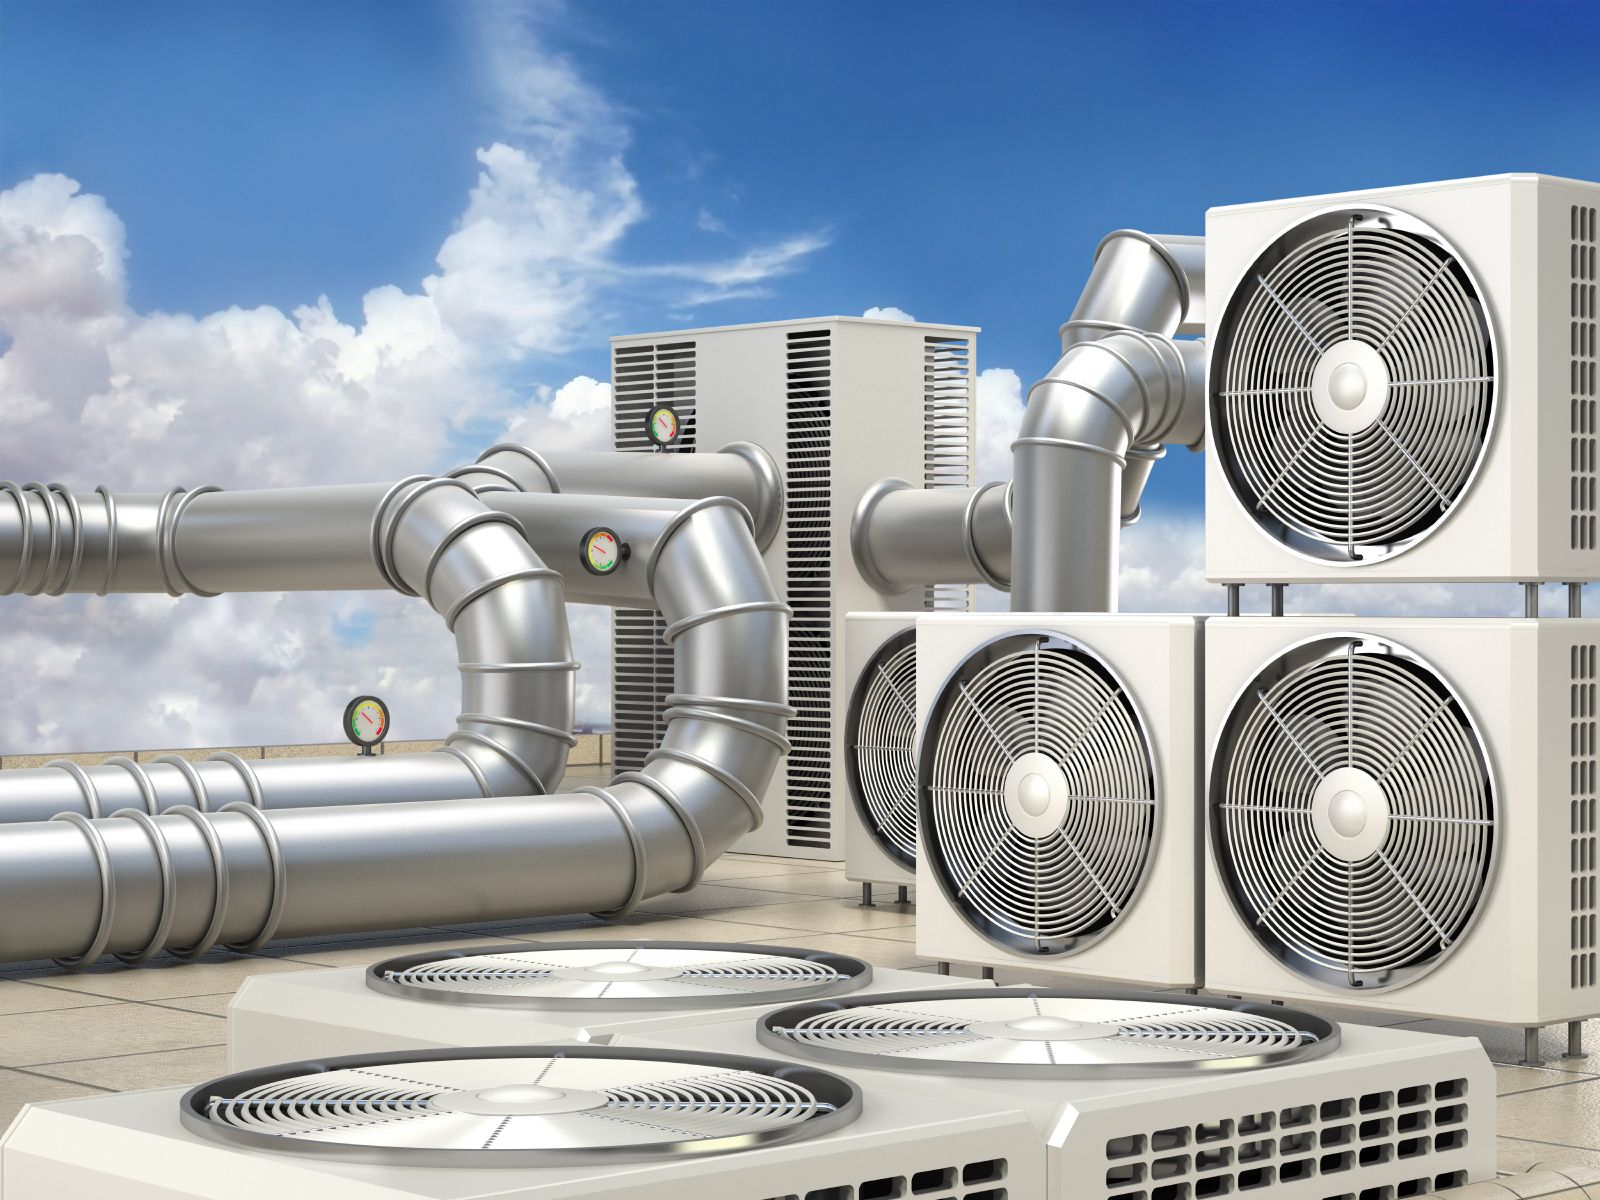 Pin By Century Heatncool On Hvac Tech Refrigeration And Air